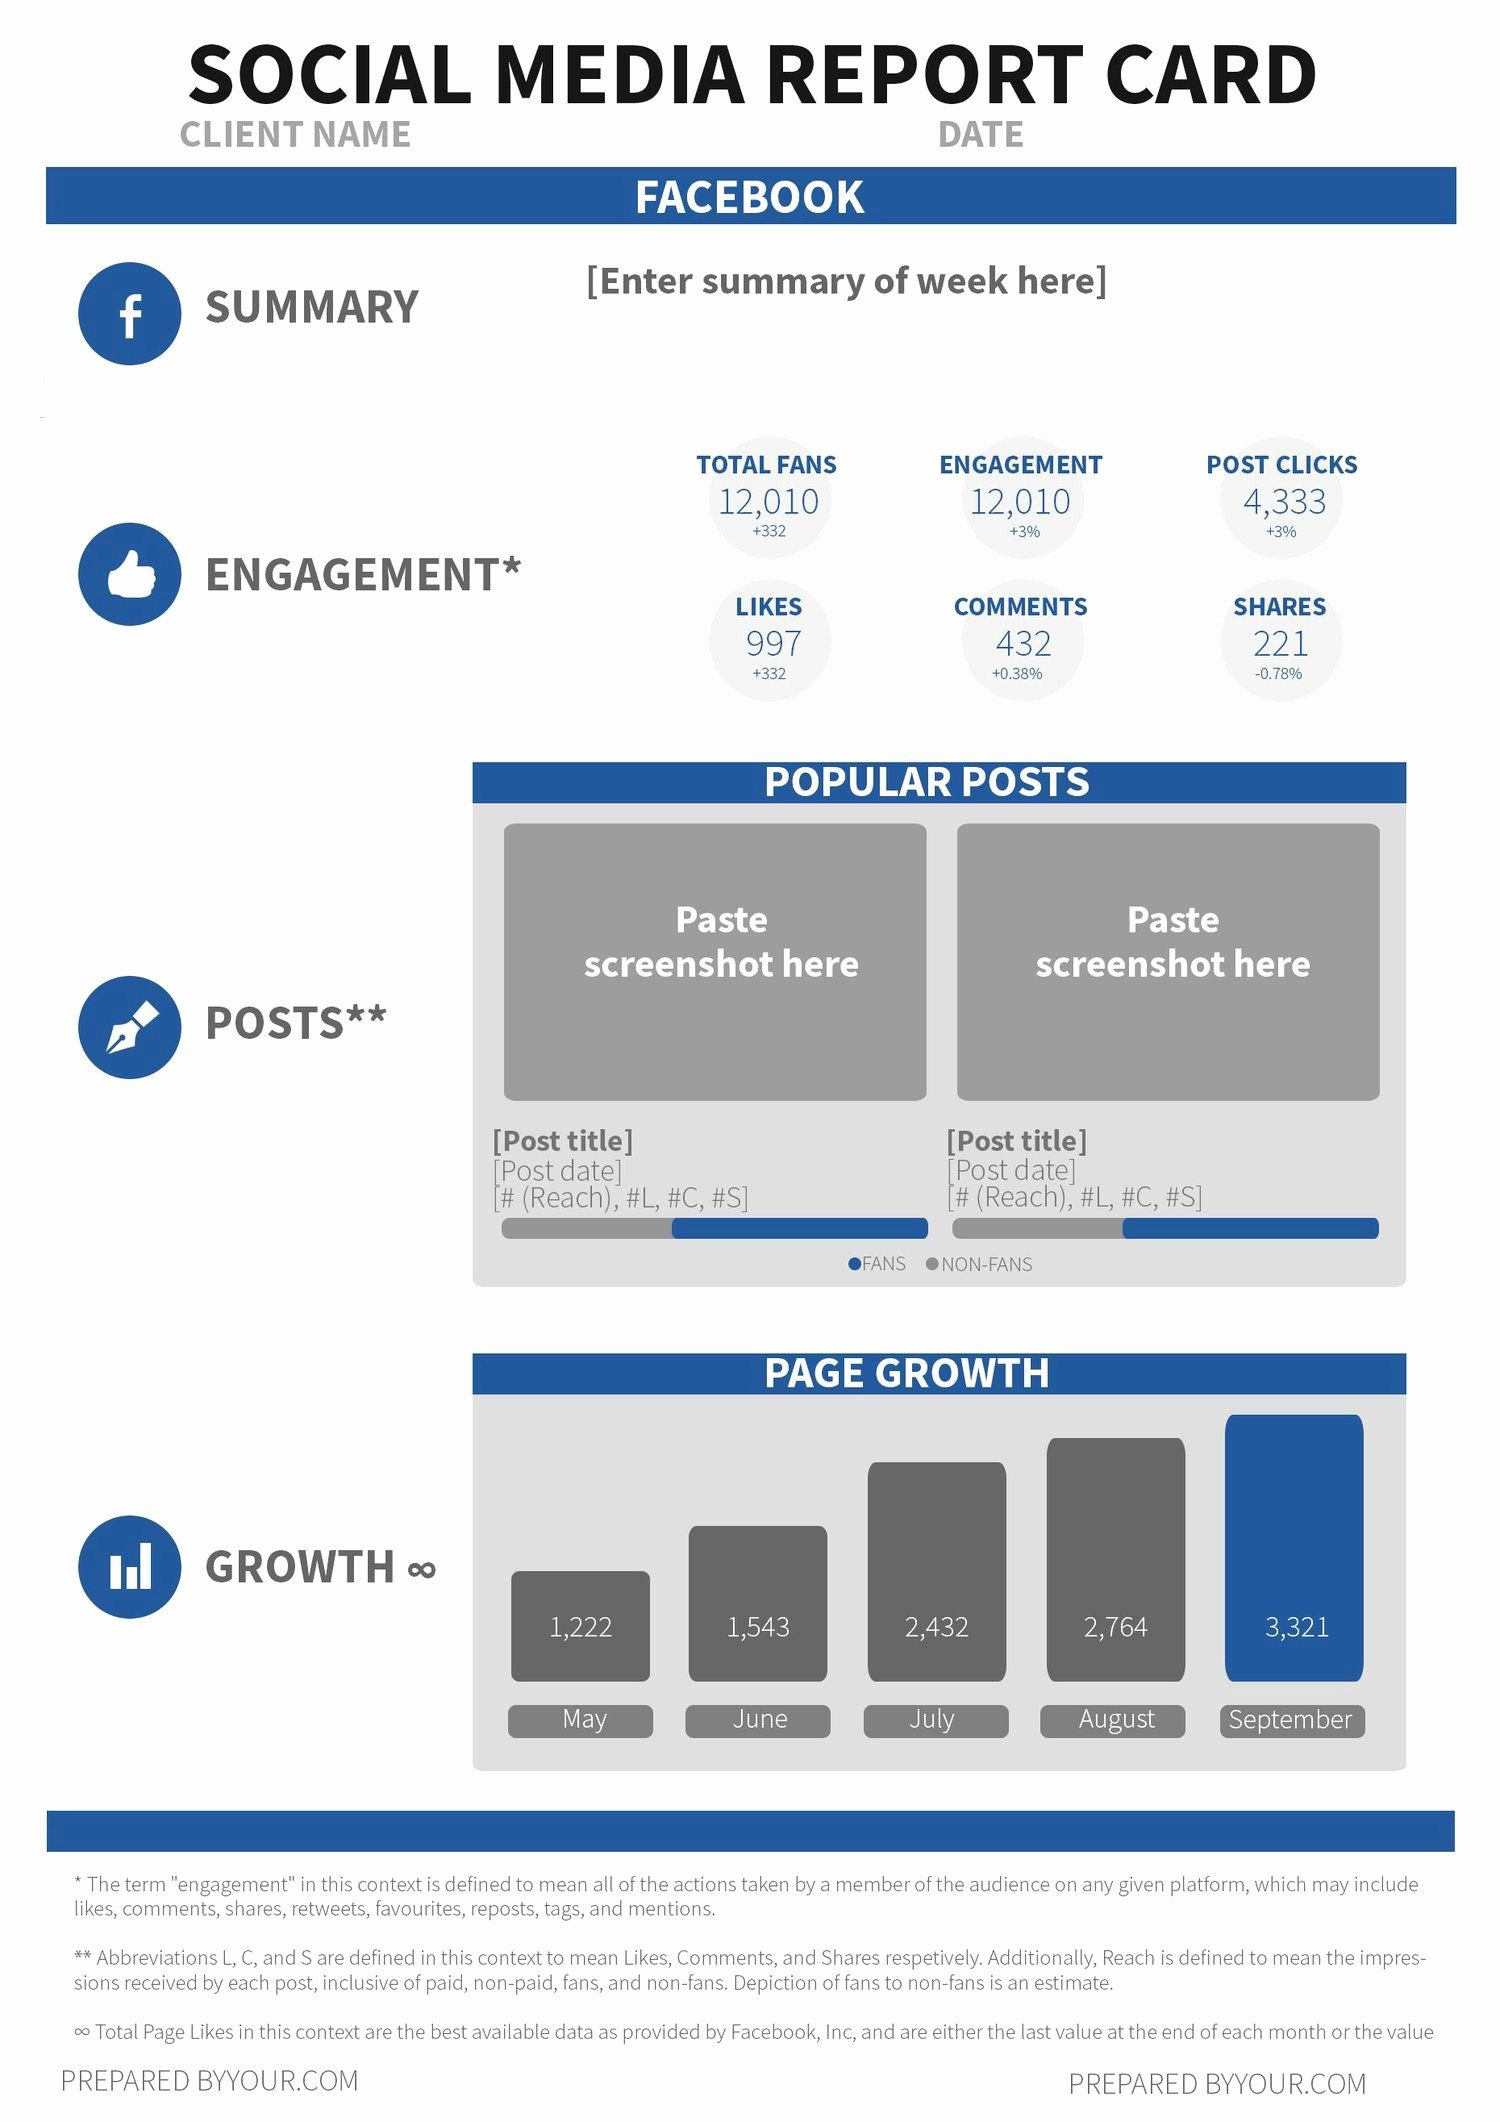 Social Media Reporting Template Excel New Social Media Report Template Social Media Report Templ Social Media Report Marketing Report Template Marketing Report